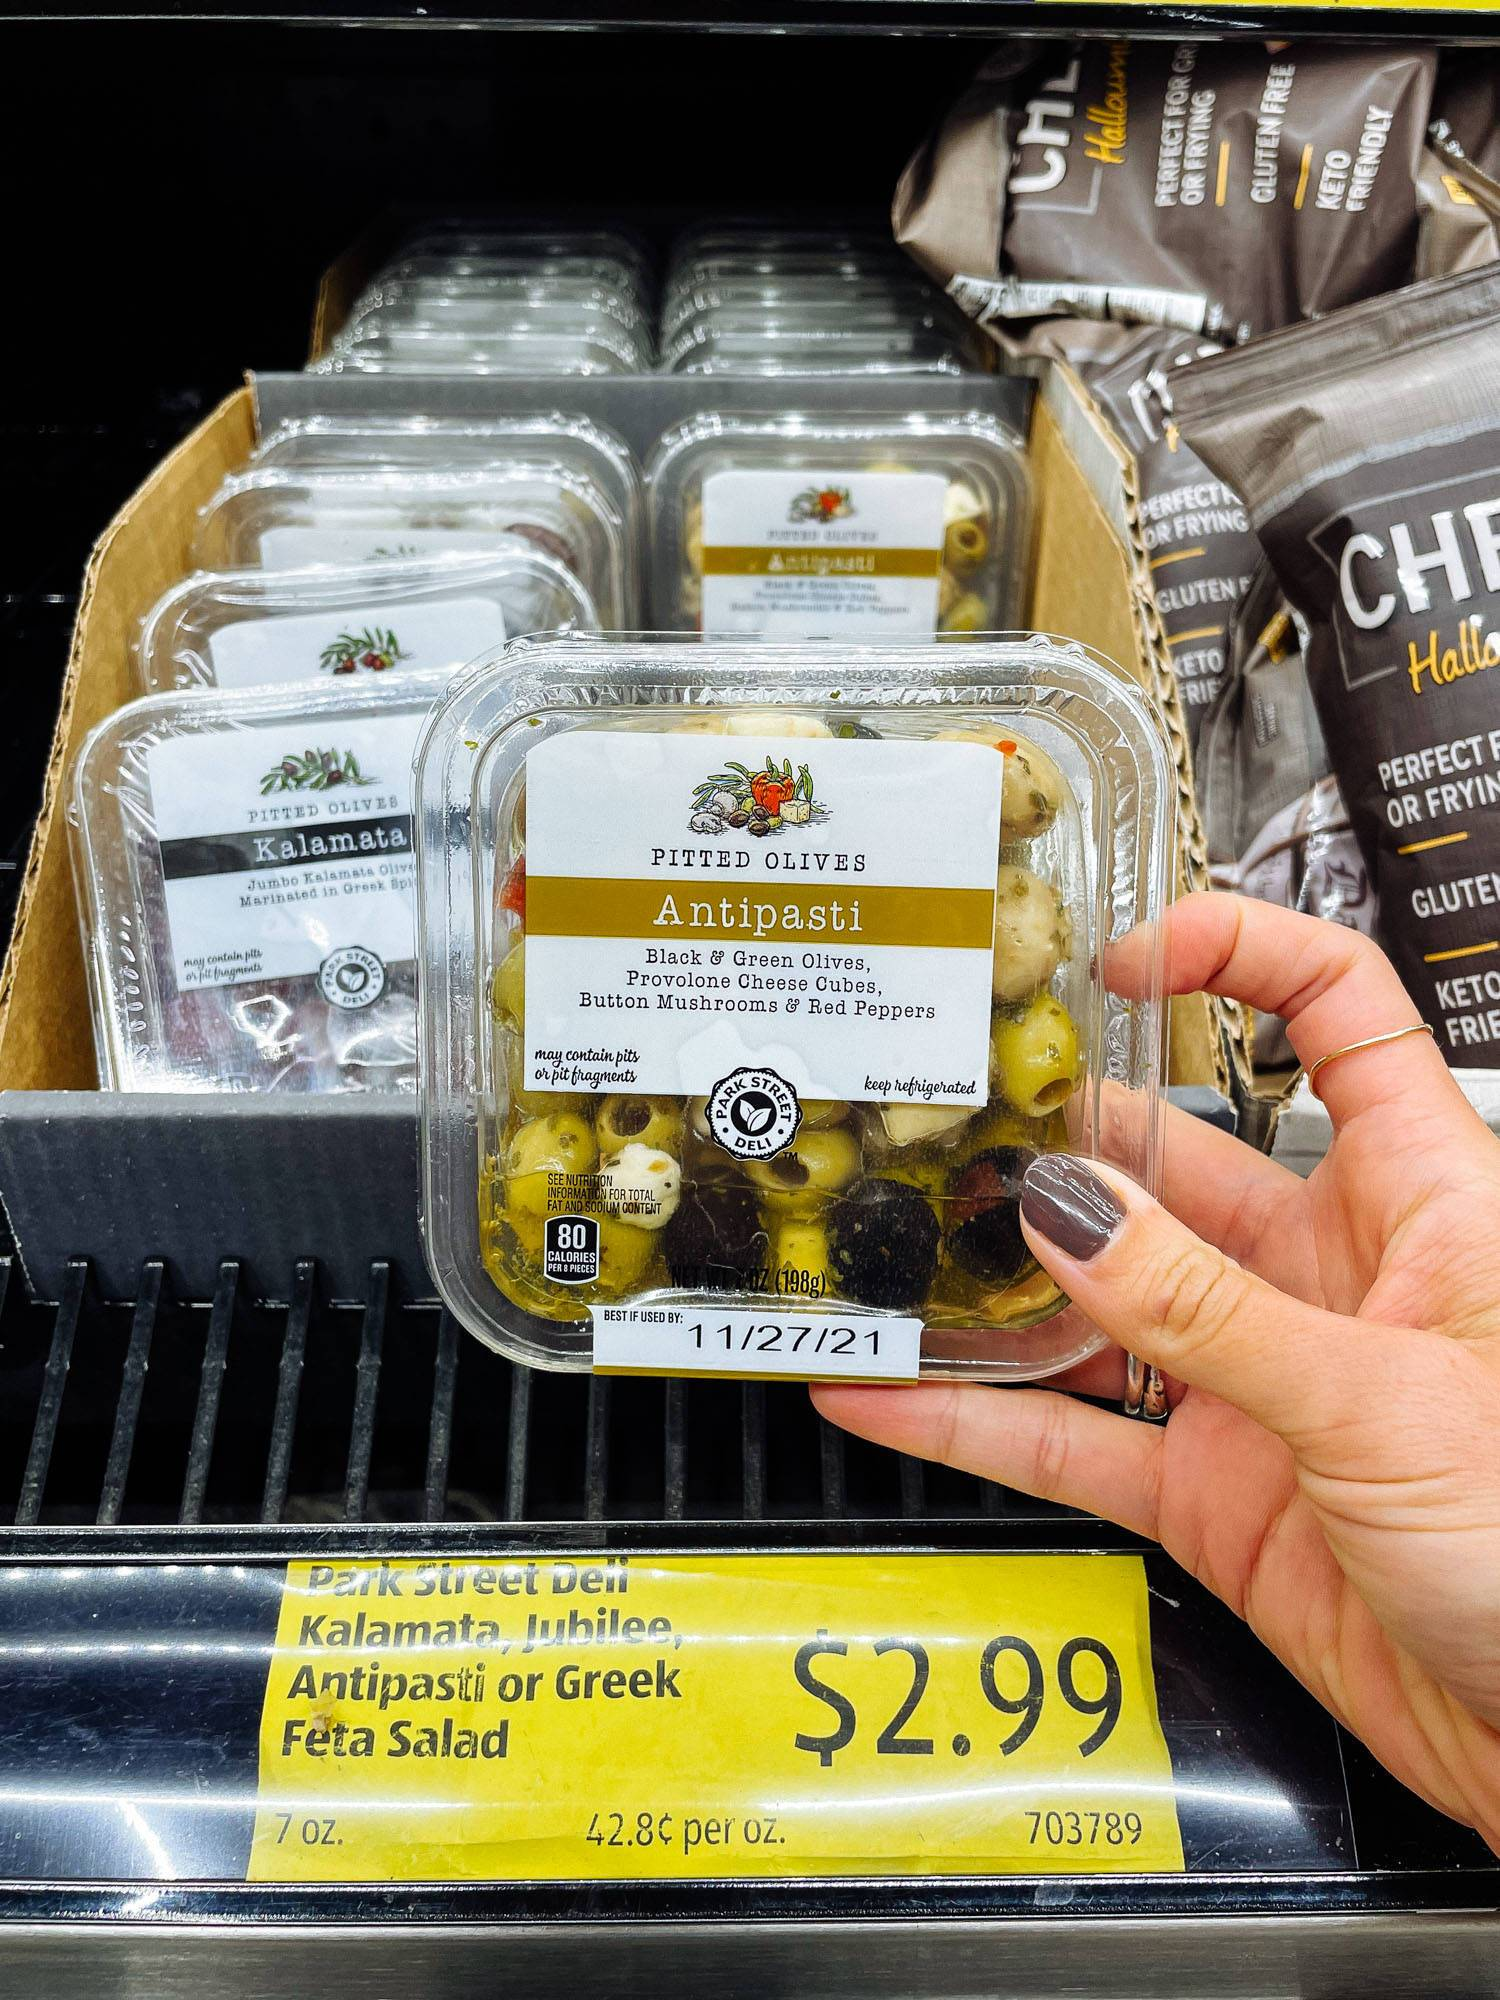 White hand holding antipasti olives and cheese container from ALDI.